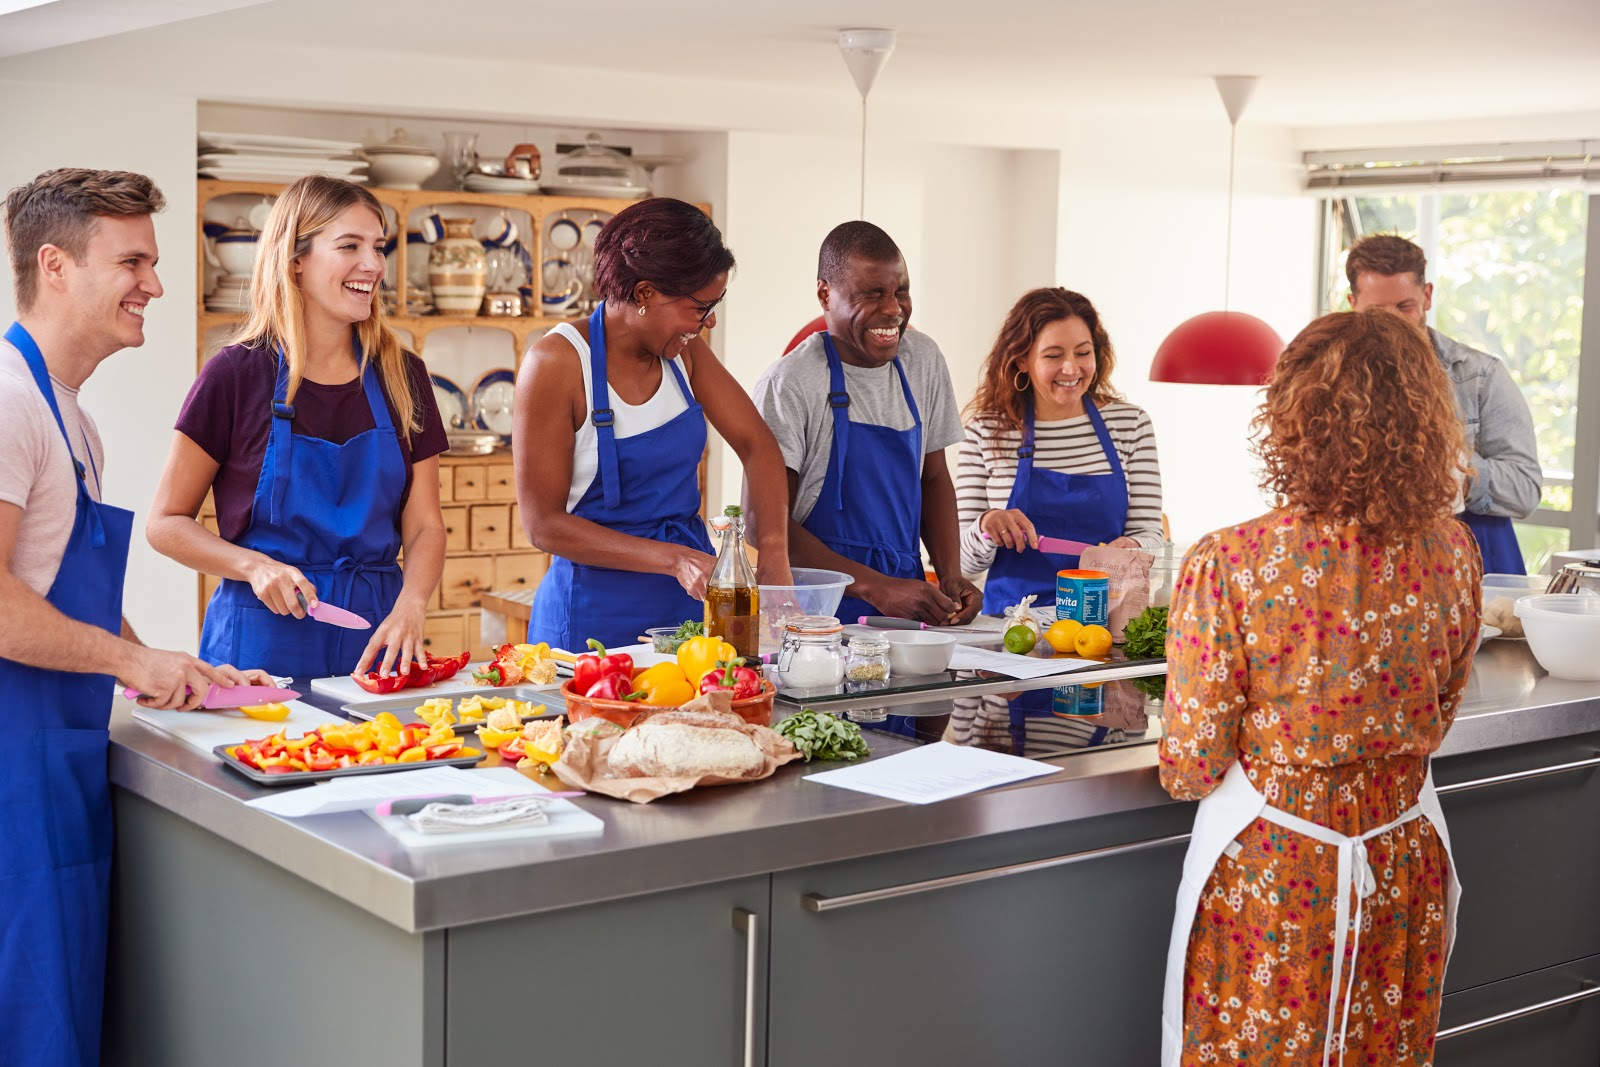 Quick fundraising ideas: cooking workshop